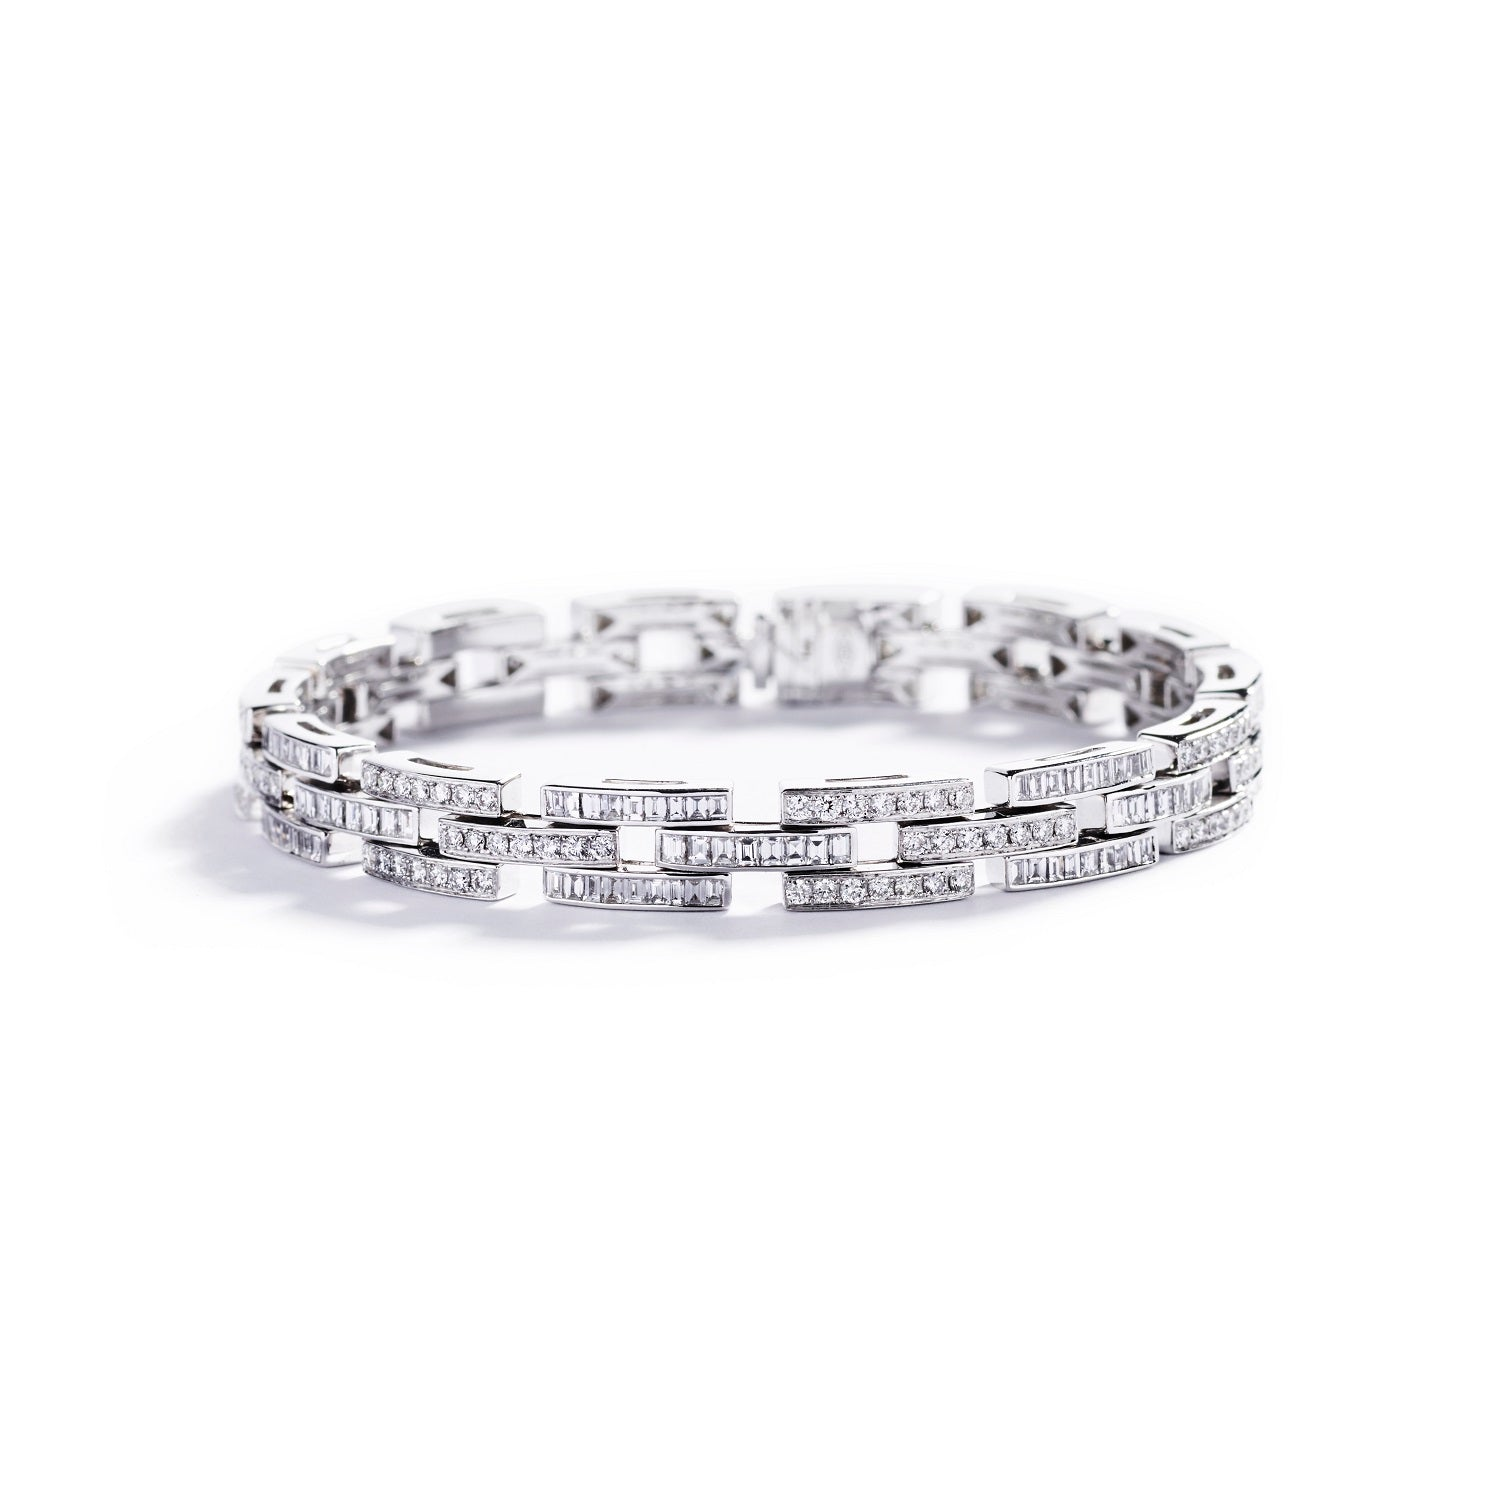 Diamantarmbånd med 2,73 ct. baguette diamanter samt 1,69 ct. brillanter